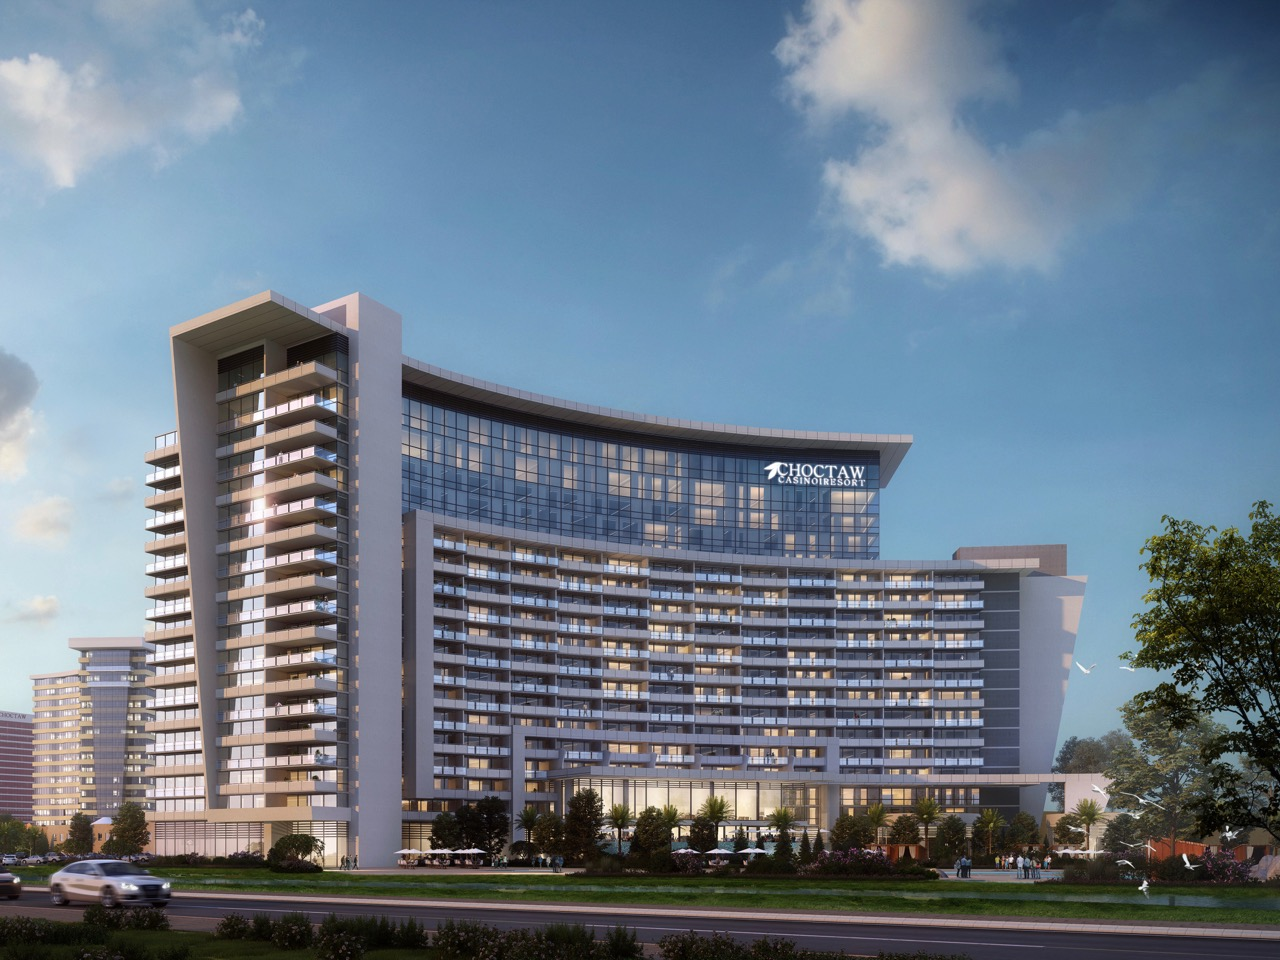 Choctaw Nation announces another expansion of flagship casino